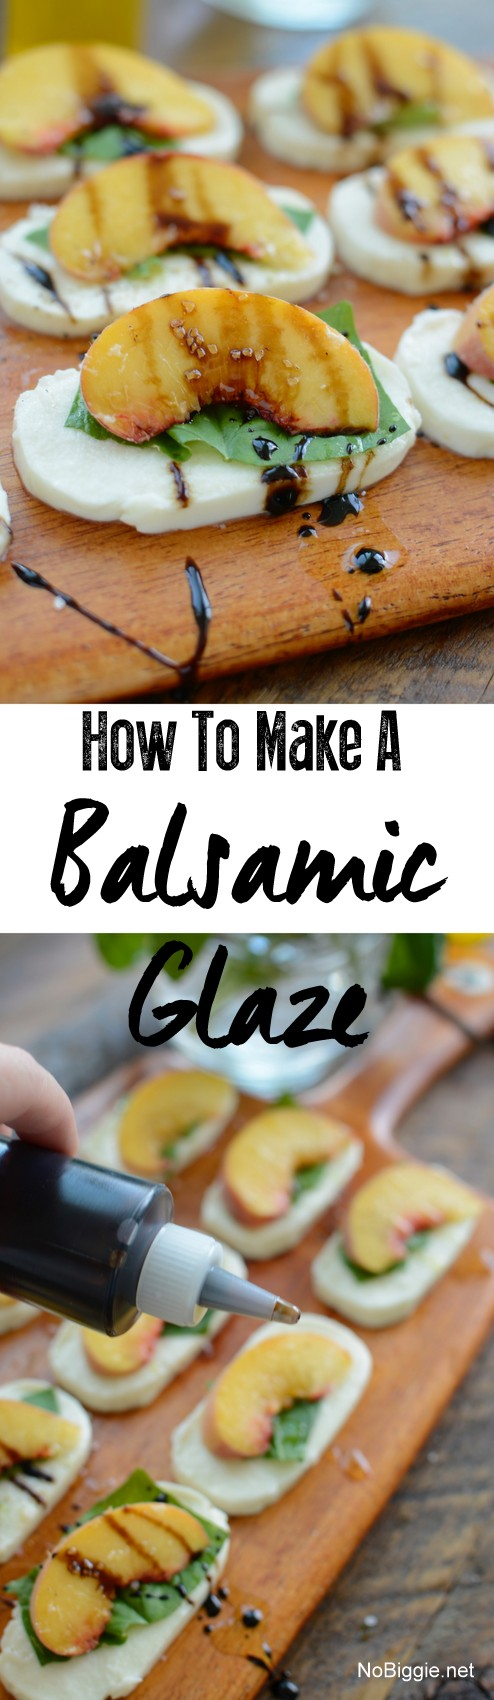 http://www.nobiggie.net/wp-content/uploads/2016/09/How-to-make-a-balsamic-glaze.jpg